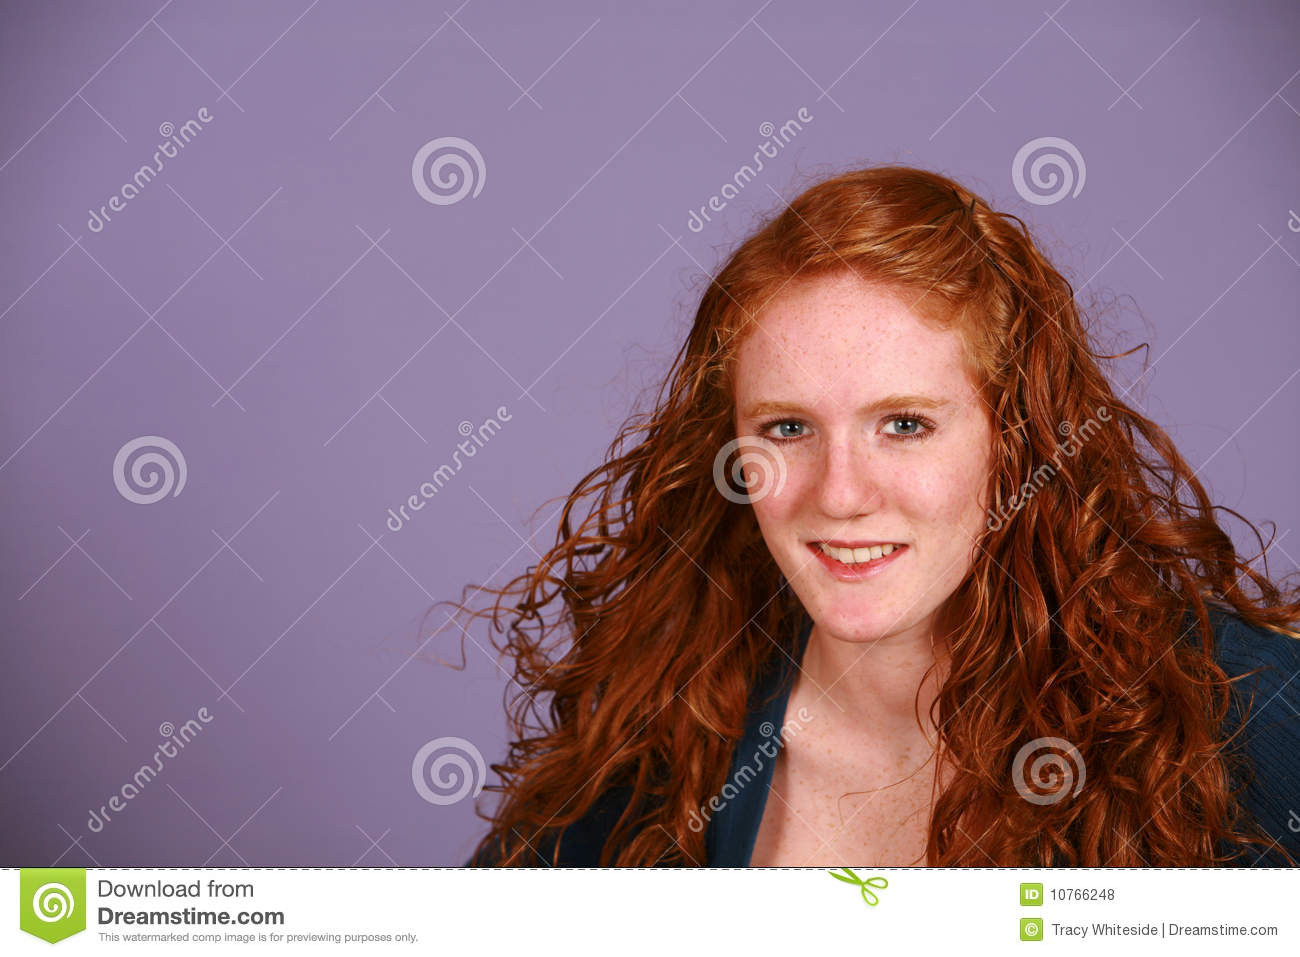 Pussy red head teen facial